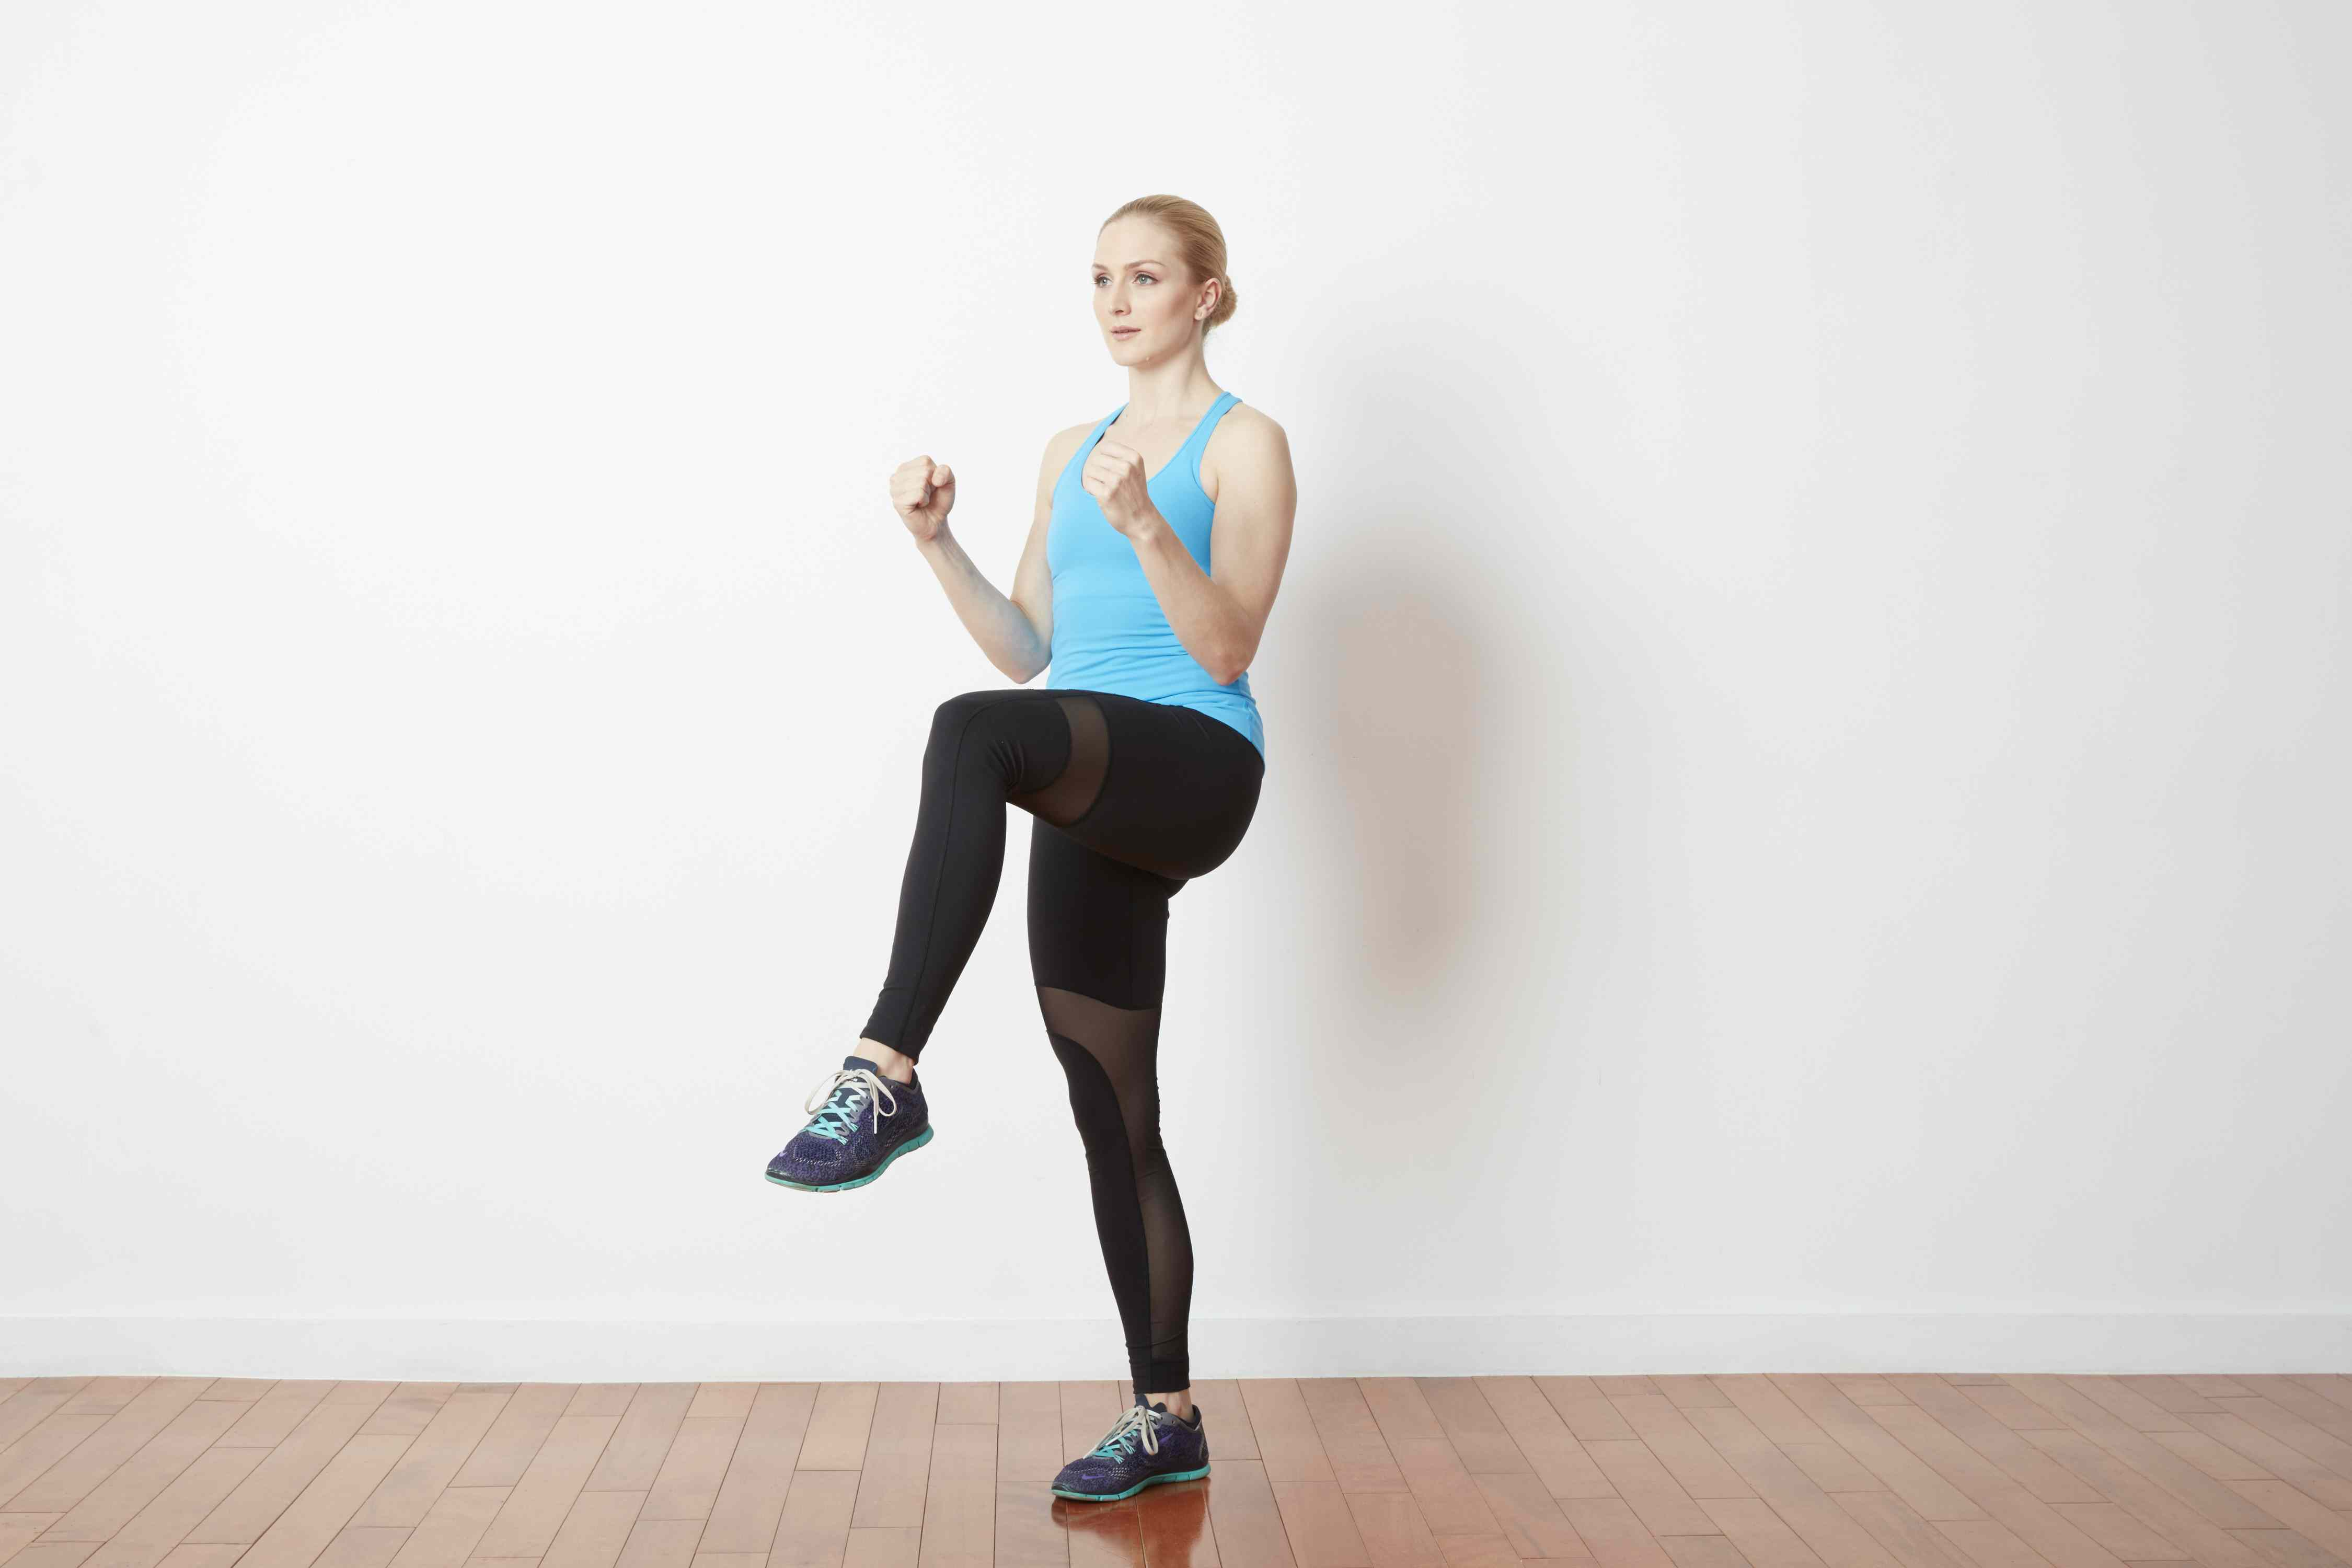 Woman jogging with high knees